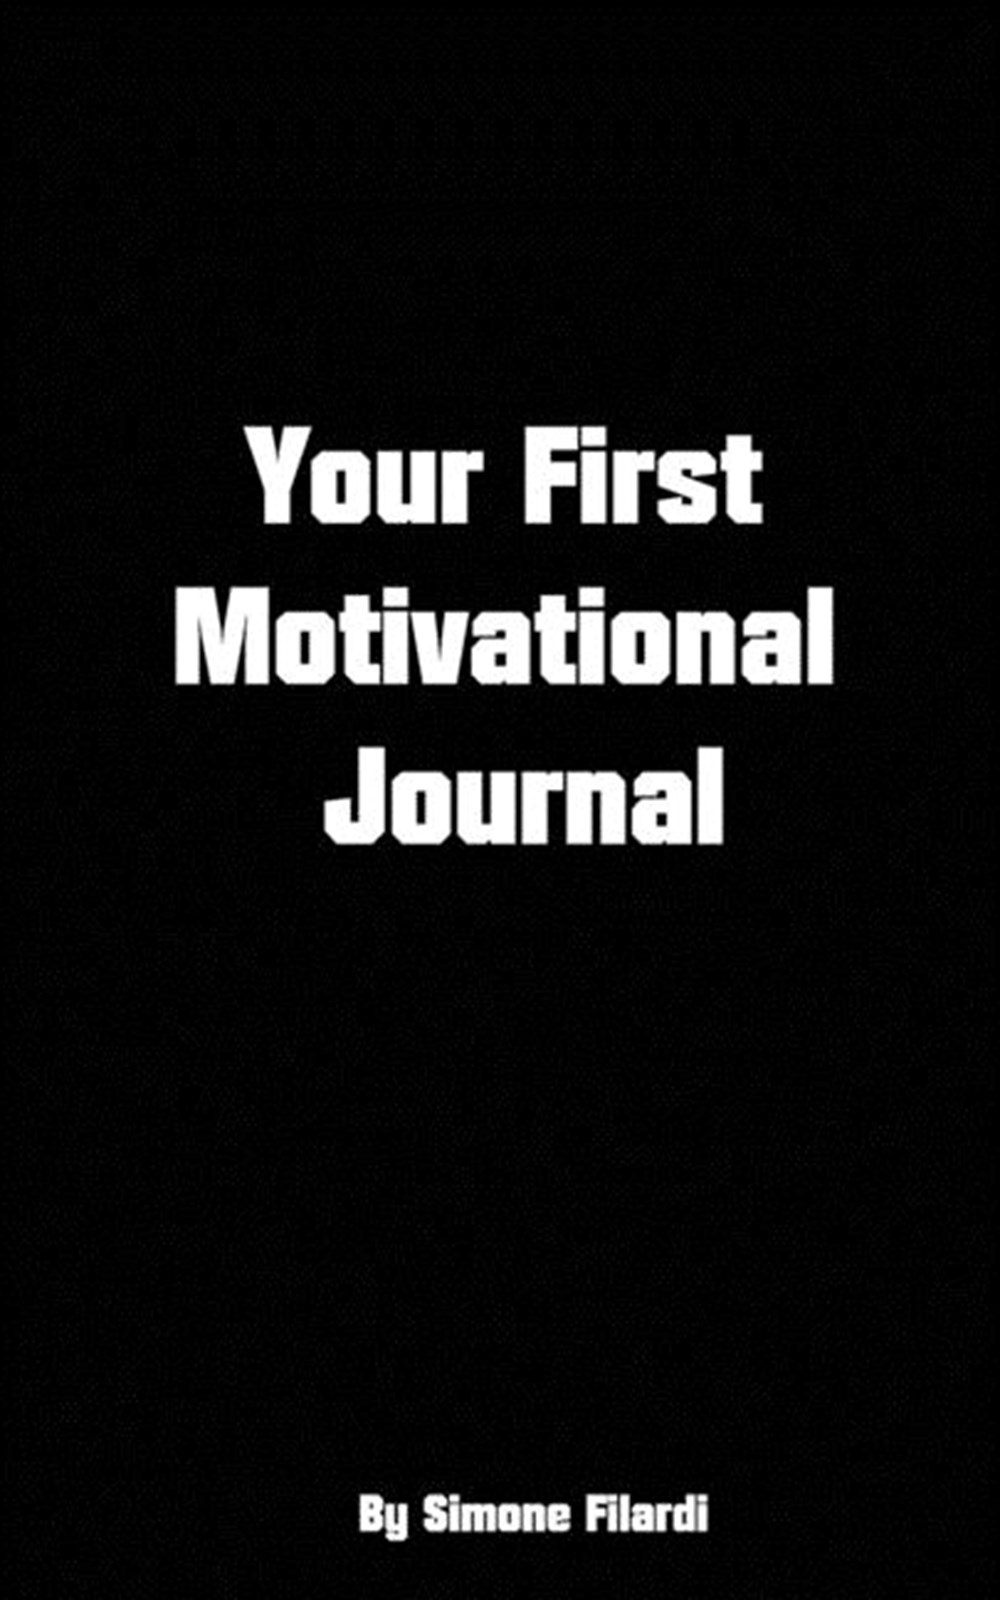 Your first motivational Journal